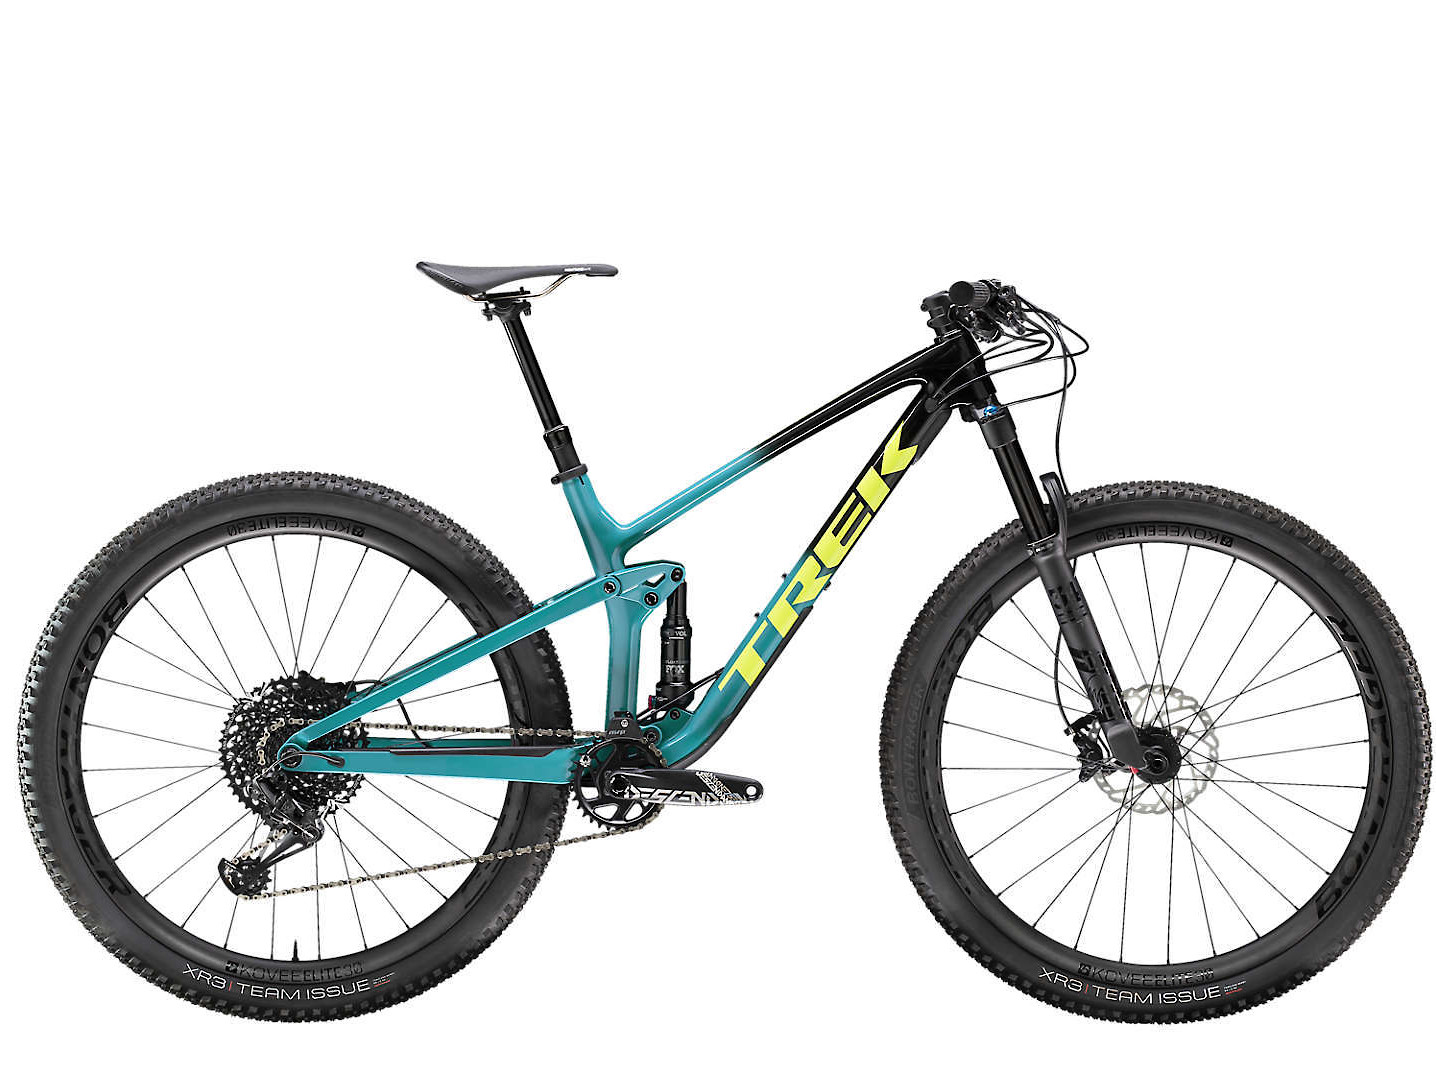 2020 Trek Top Fuel 9.8 in Trek Black to Teal Fade